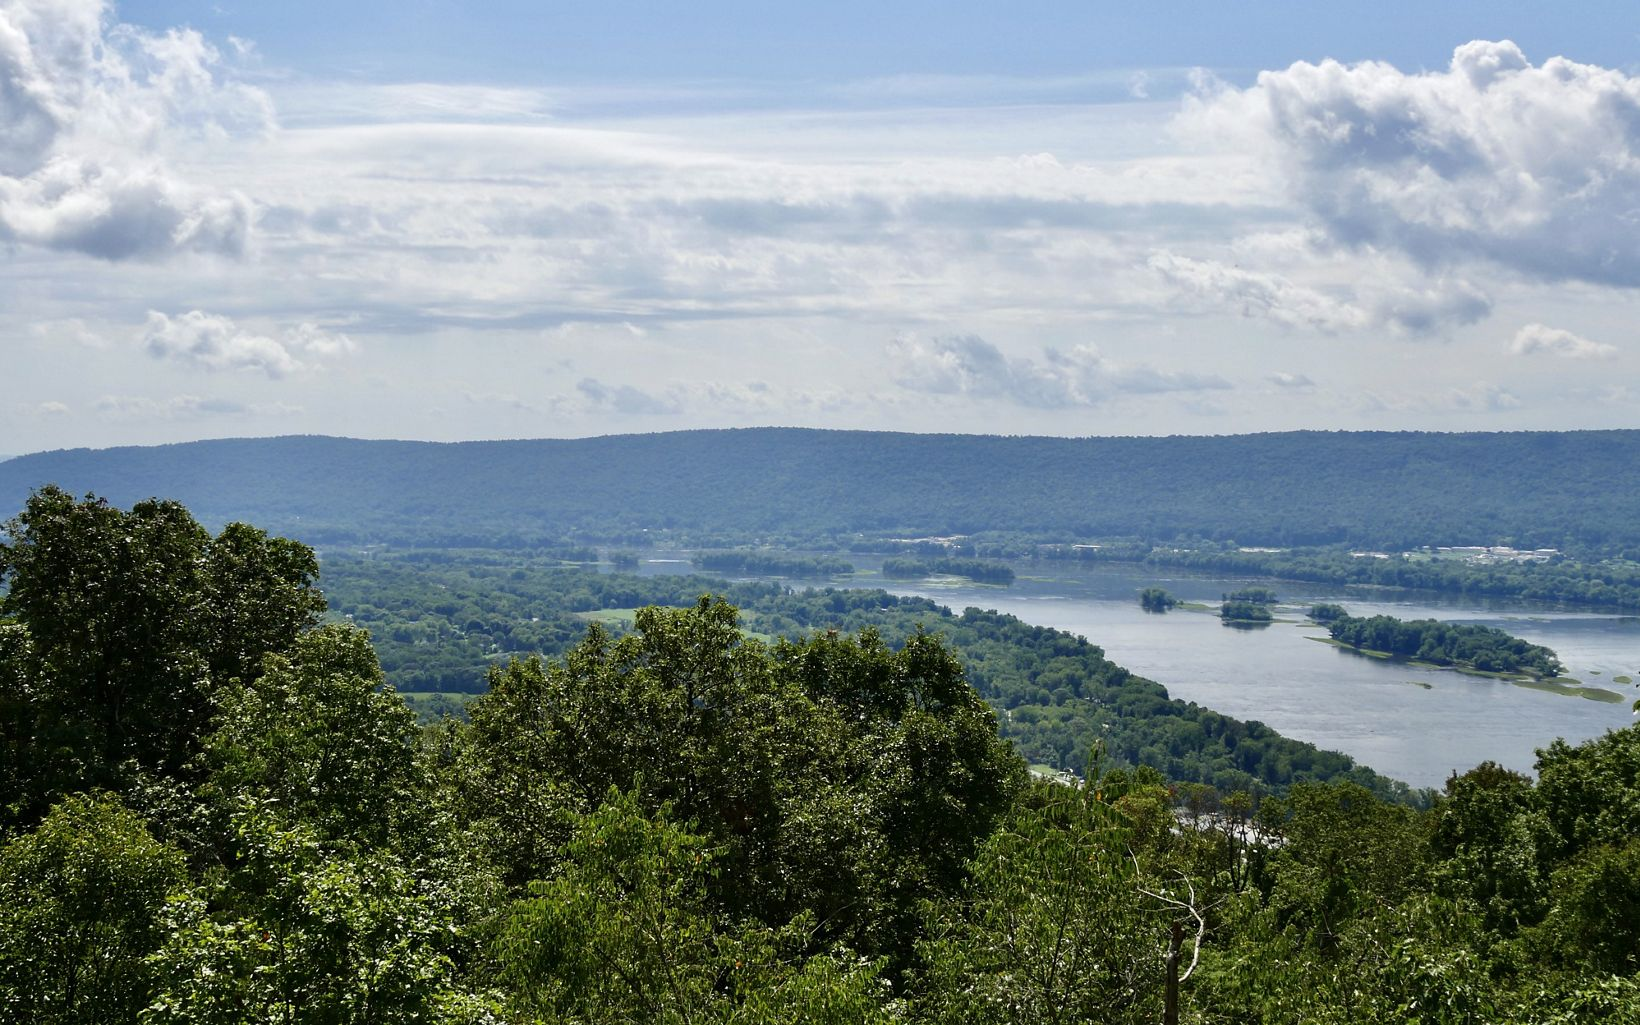 Scenic view from the Appalachian Trail. The wide, smooth Susquehanna River flows below the vantage point curving to the left towards the Cove Mountain ridge line.